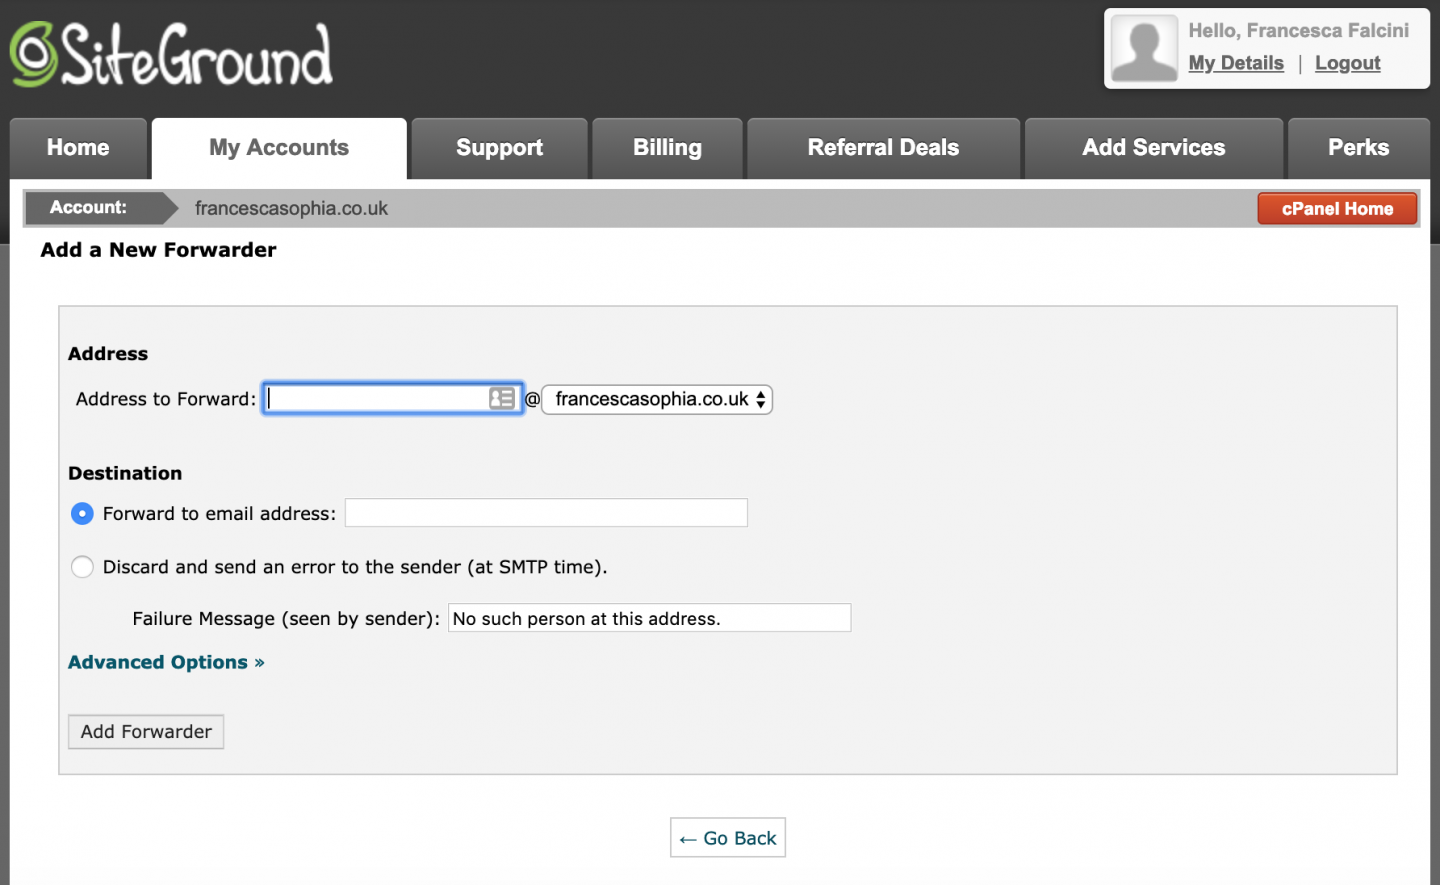 Forwarding options for emails on the SiteGround CPanel on francescasophia.co.uk